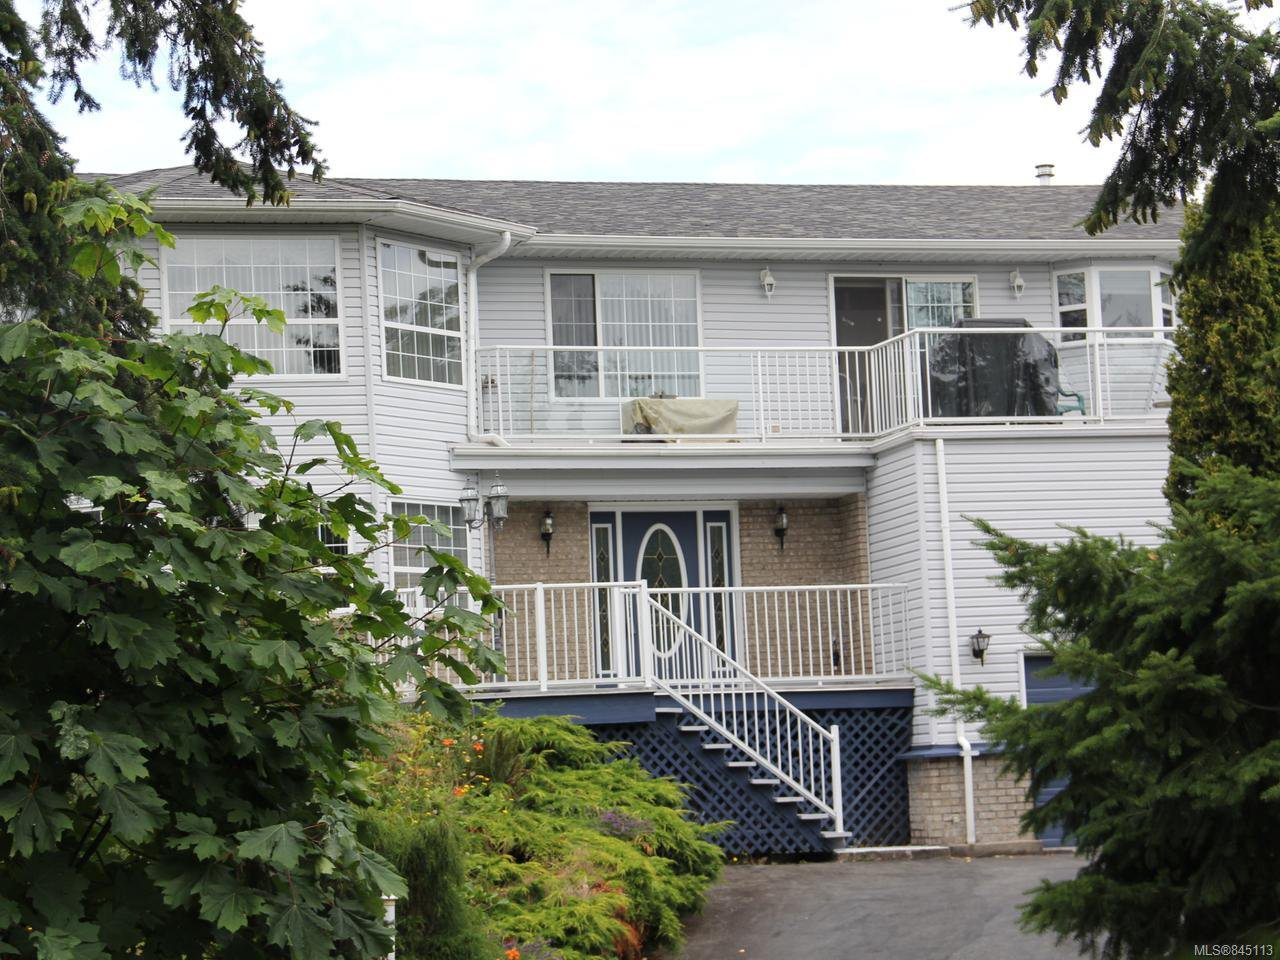 Main Photo: 3111 Channel Blvd in CHEMAINUS: Du Chemainus Single Family Detached for sale (Duncan)  : MLS®# 845113